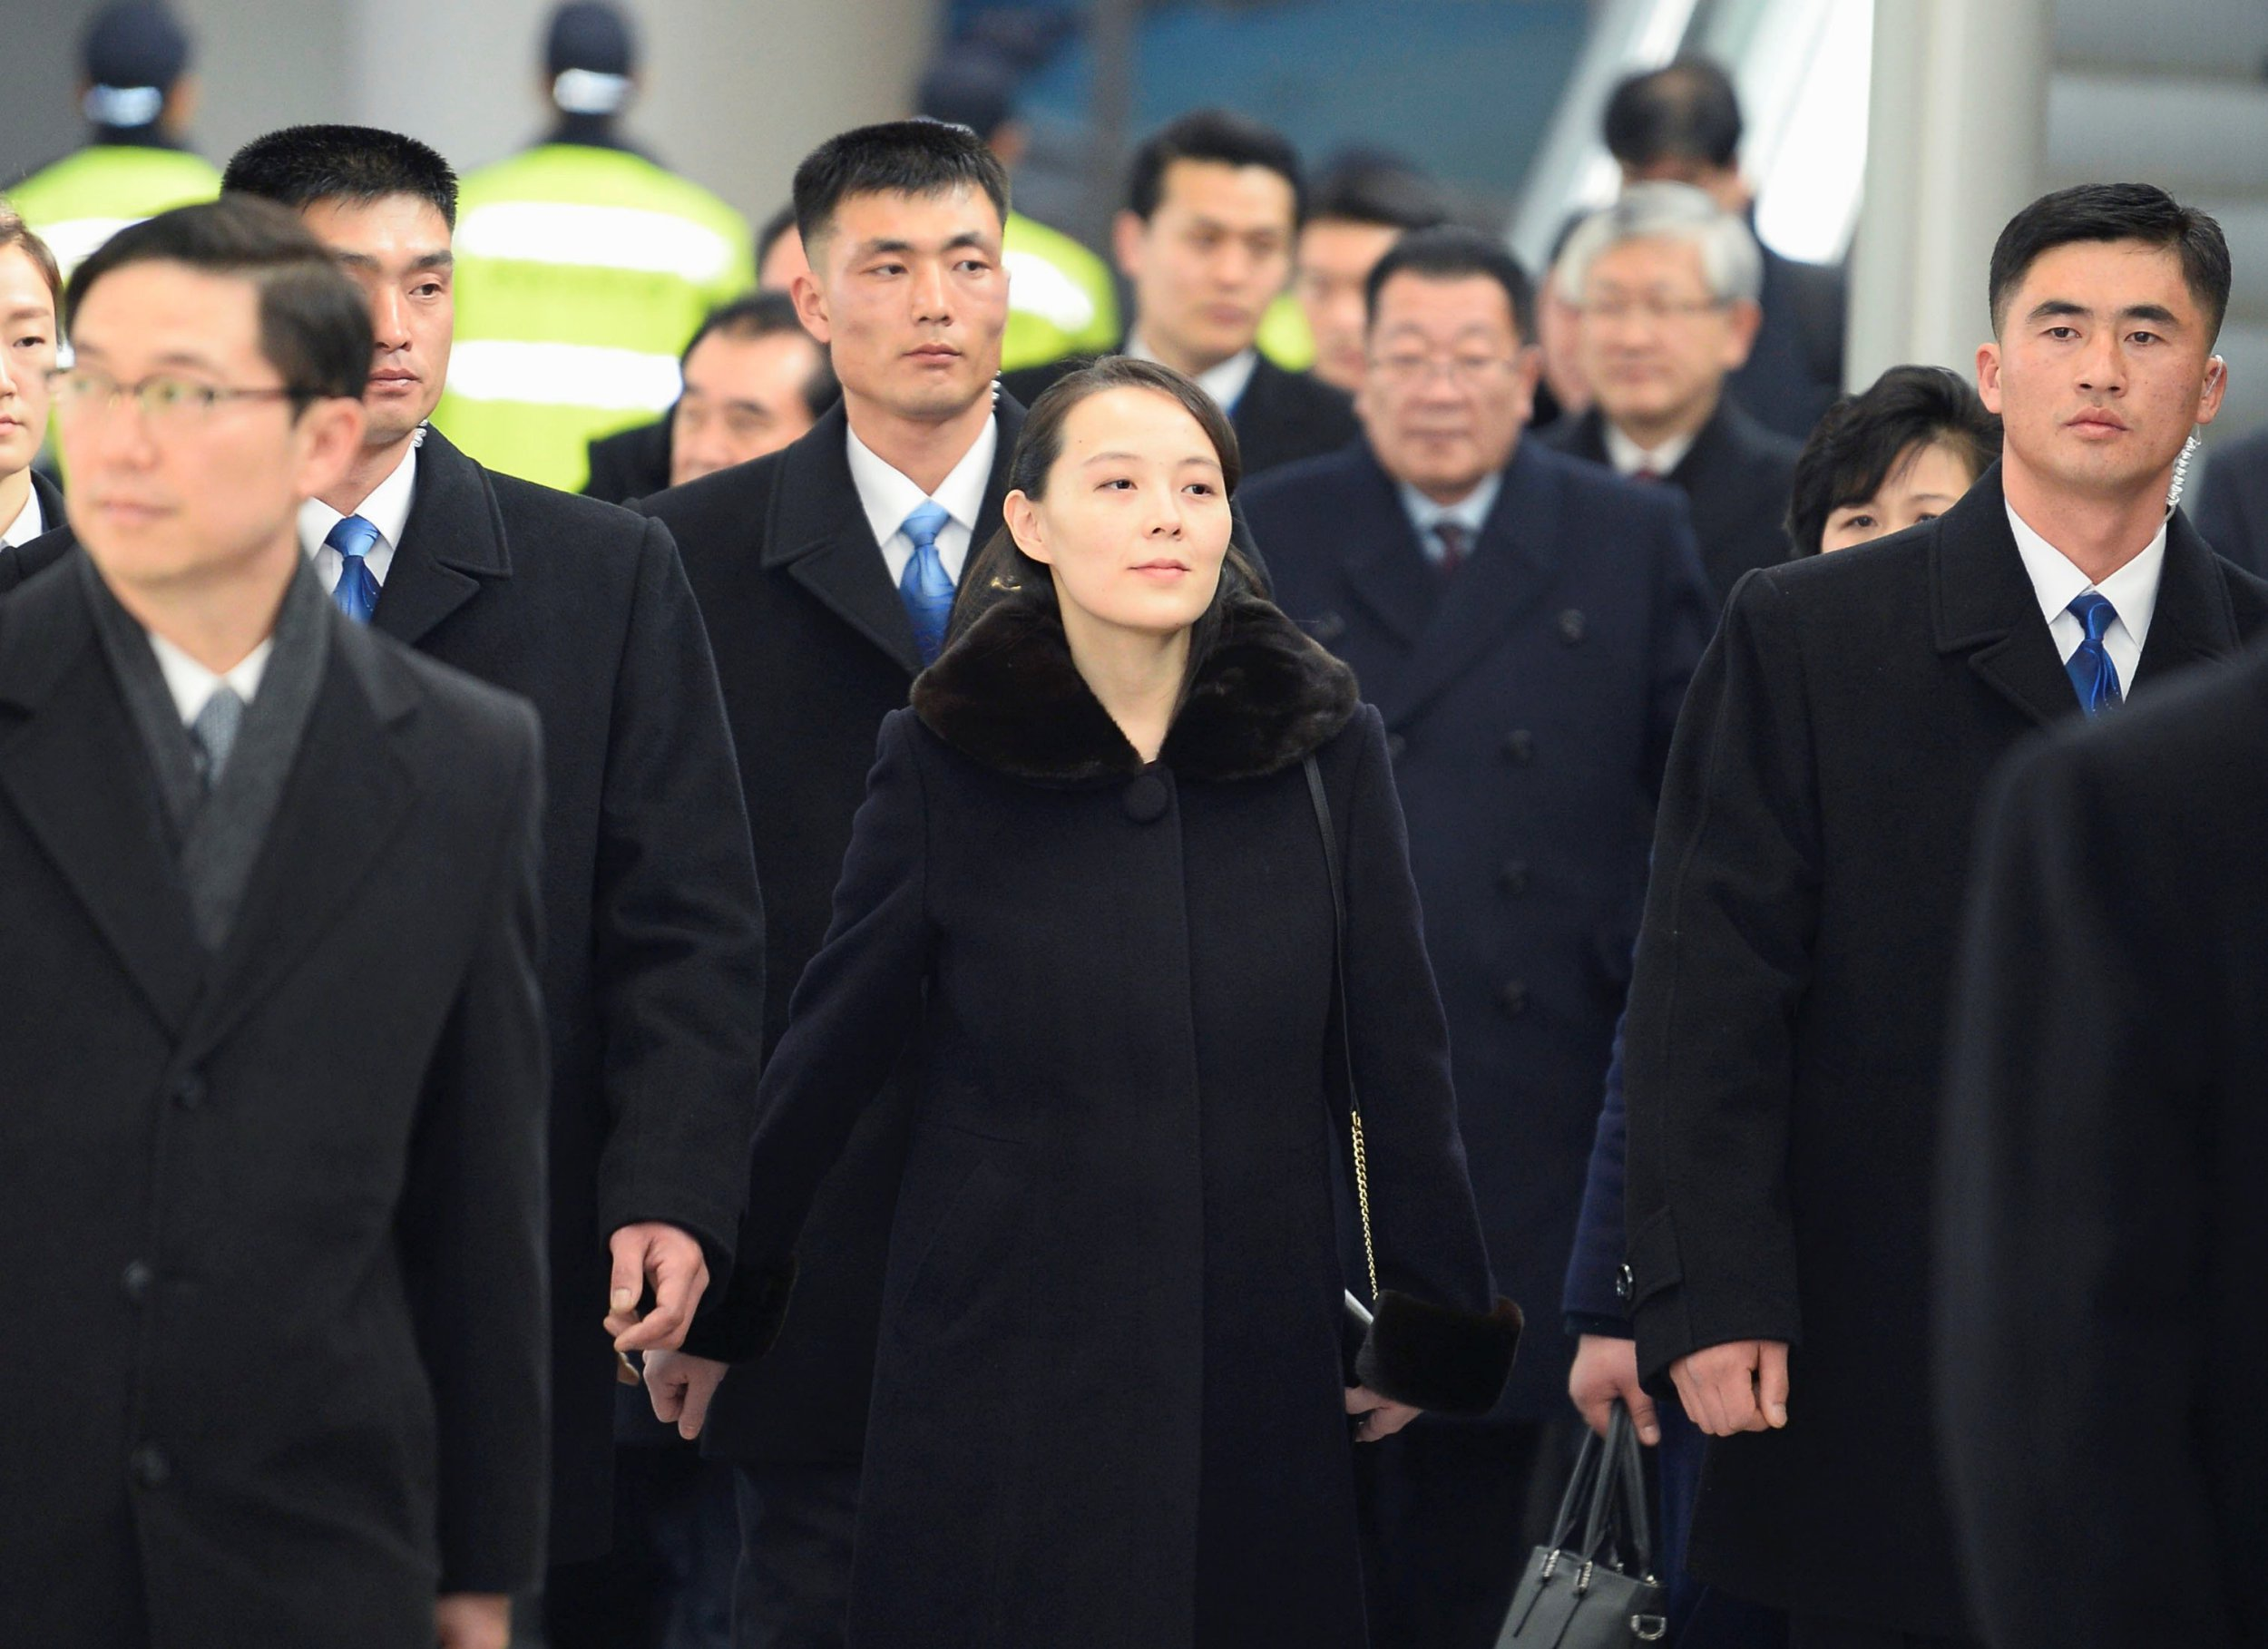 Kim Jong Un's sister becomes first in family to step foot on South Korean soil